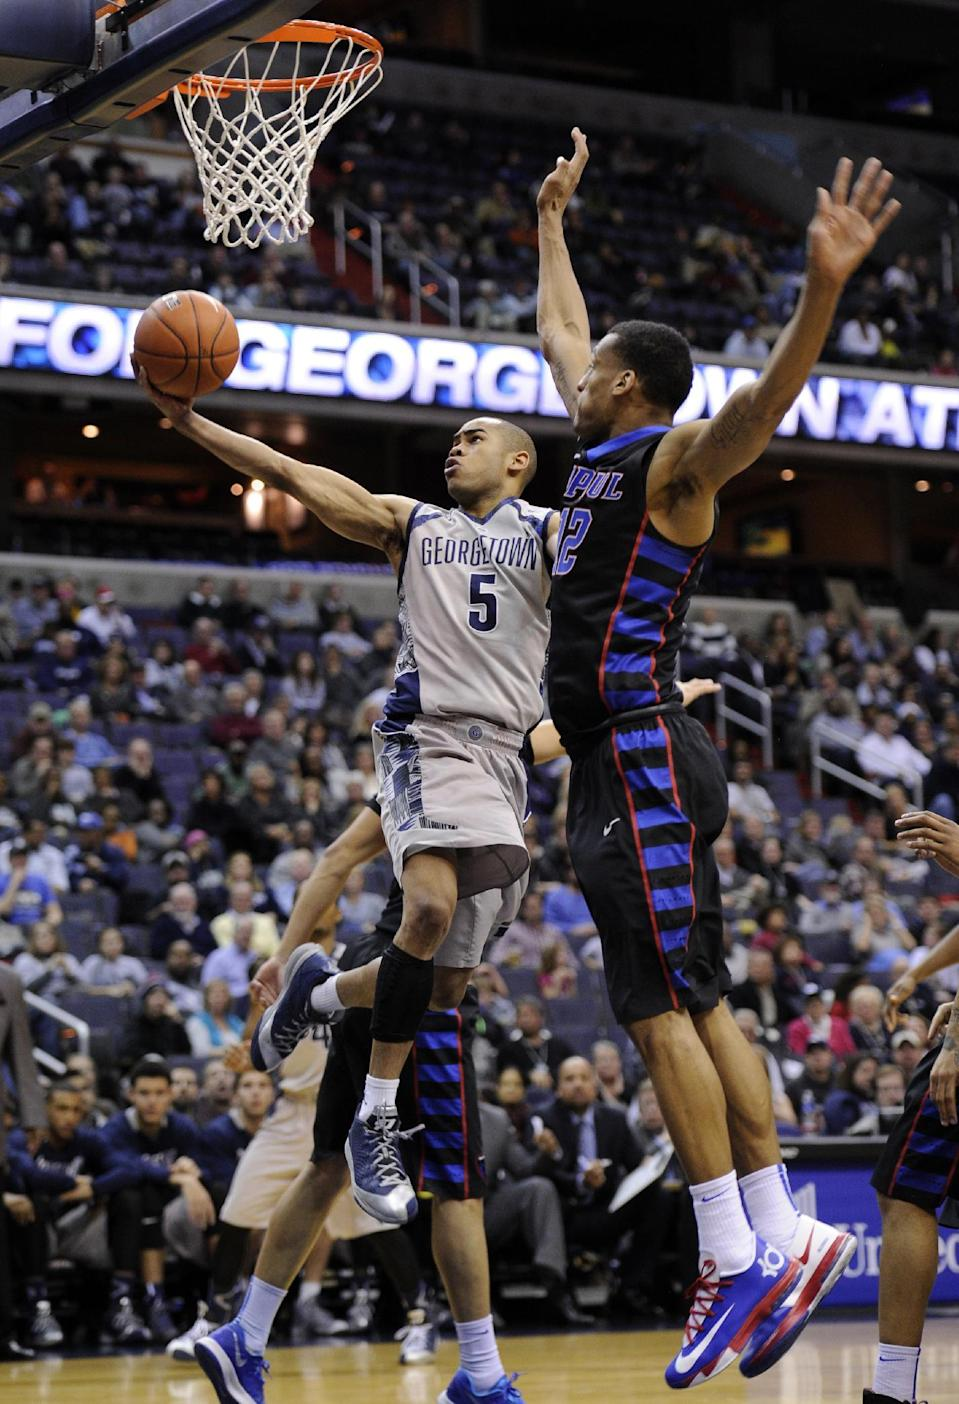 Georgetown guard Markel Starks (5) goes to the basket against DePaul forward Cleveland Melvin (12) during the second half of an NCAA college basketball game, Tuesday, Dec. 31, 2013, in Washington. Georgetown won 61-54. (AP Photo/Nick Wass)